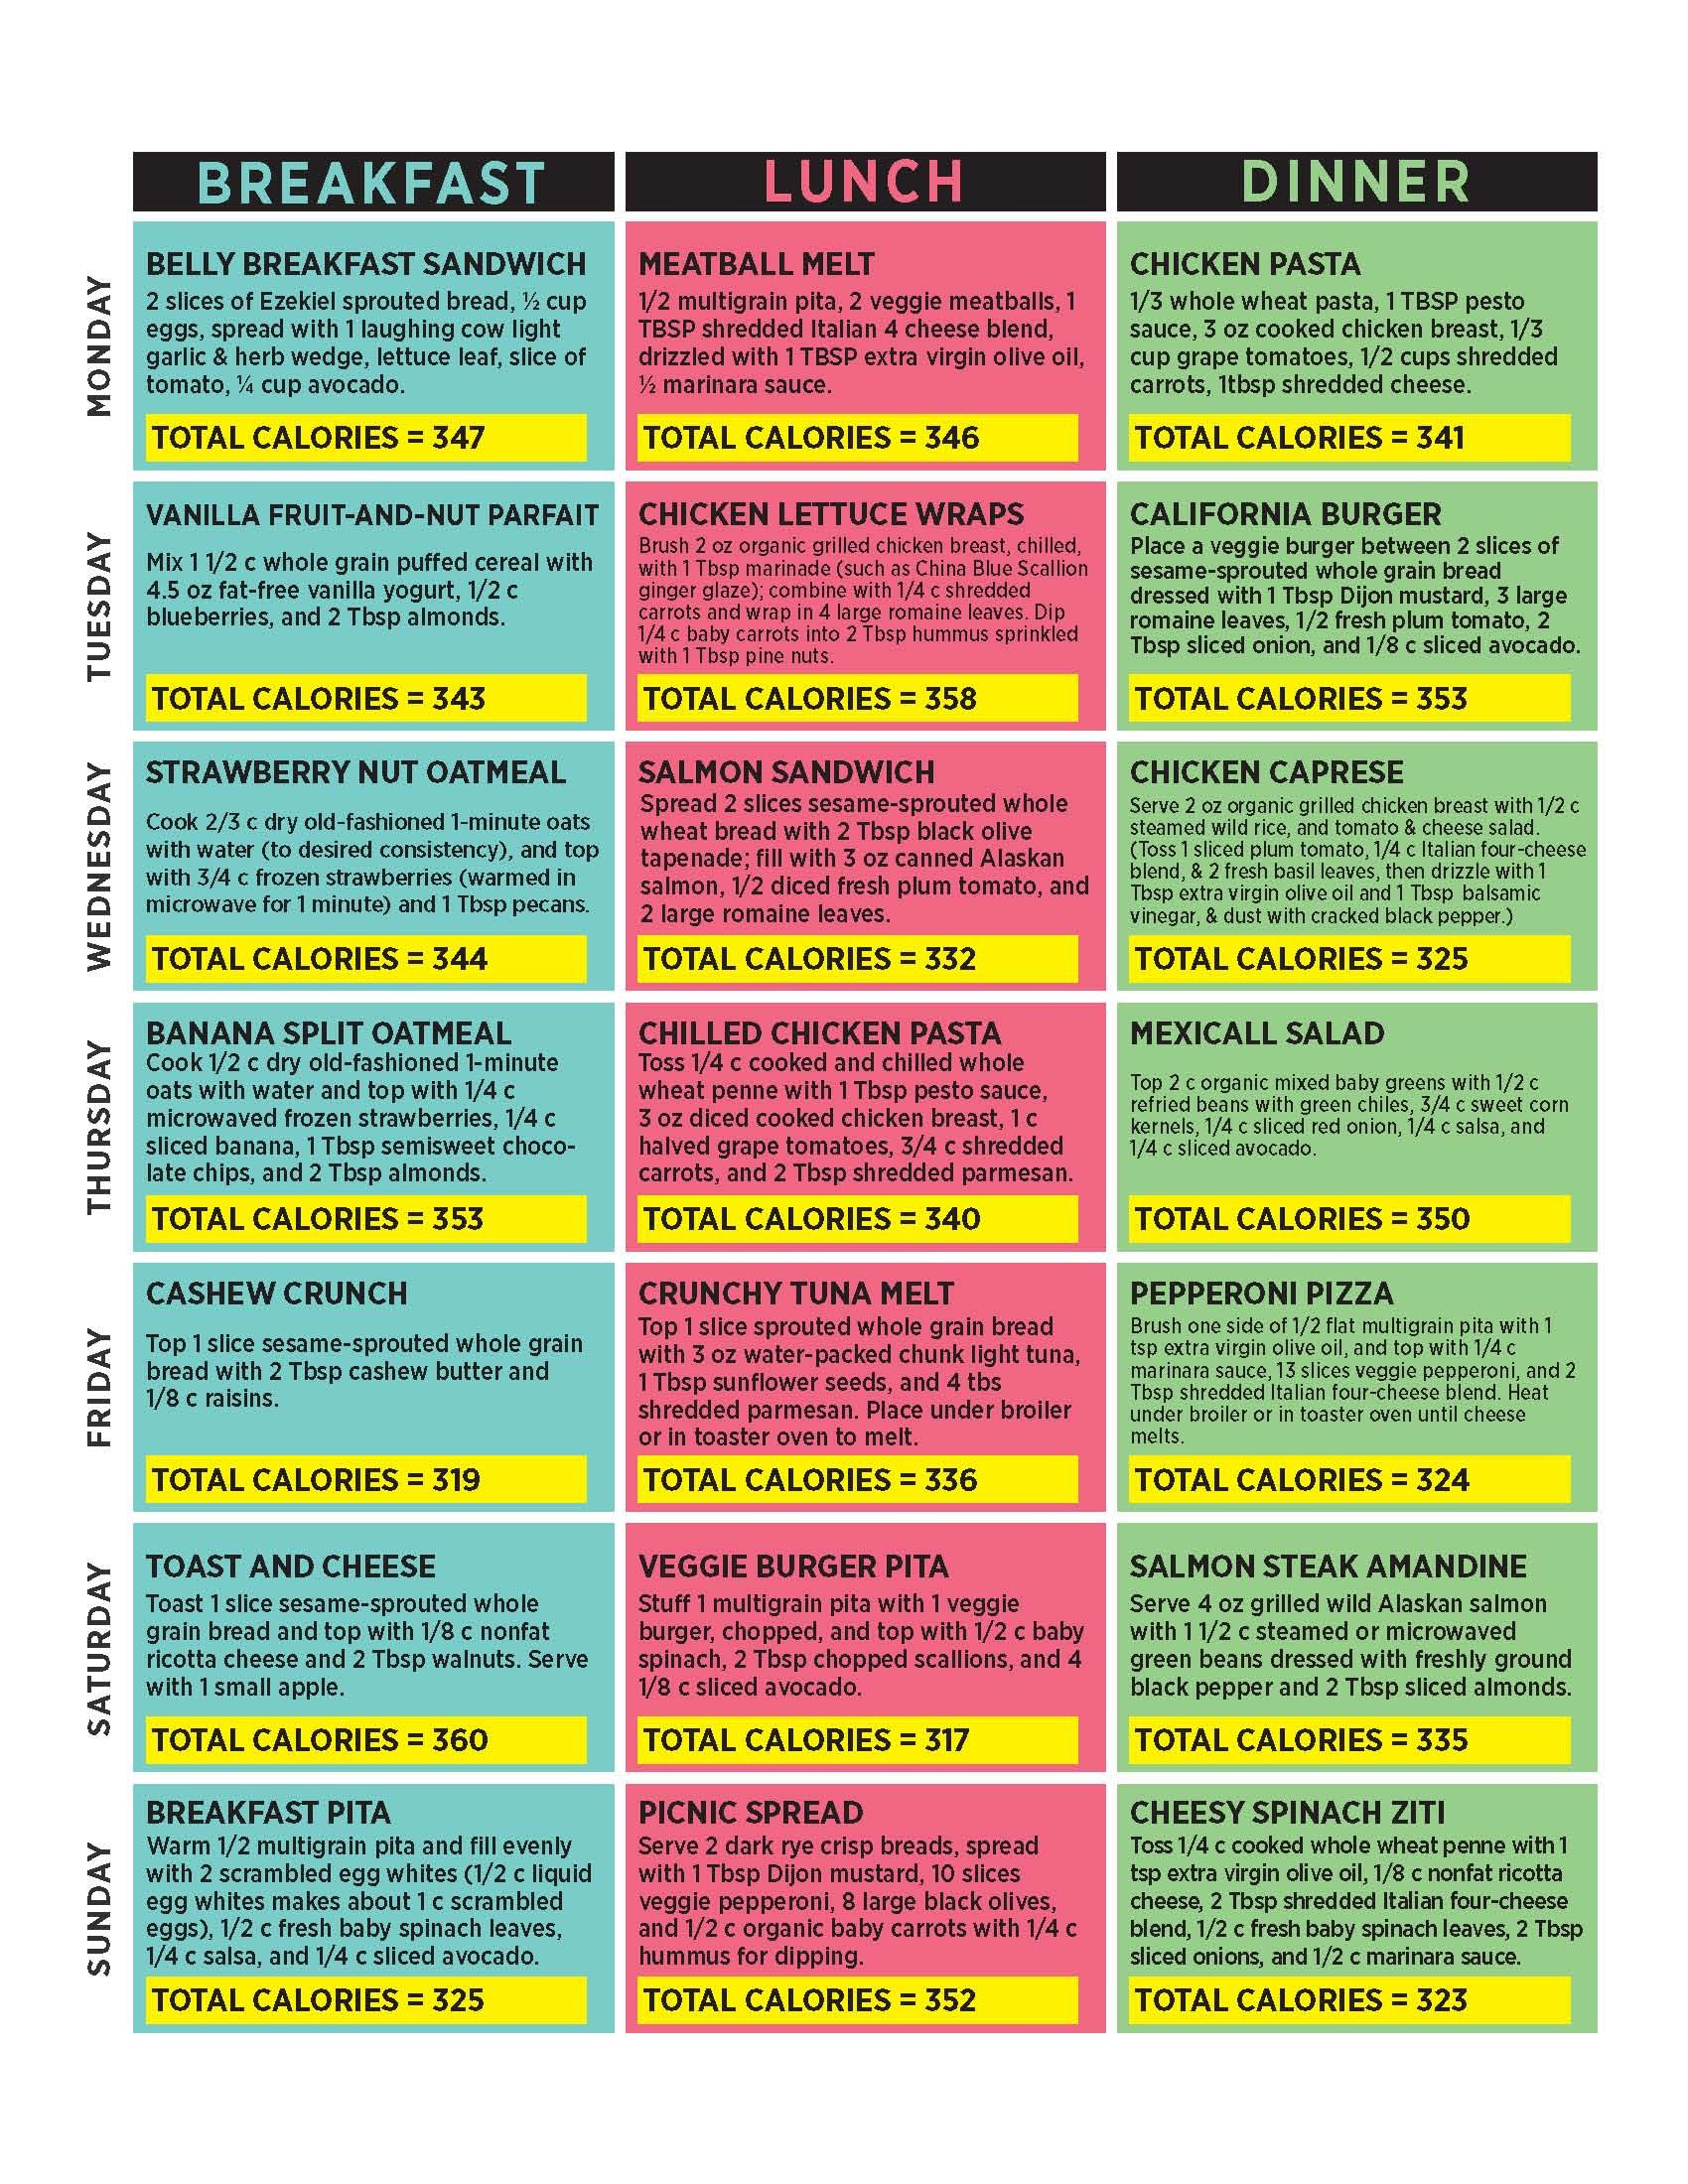 700 calories a day diet meal plan